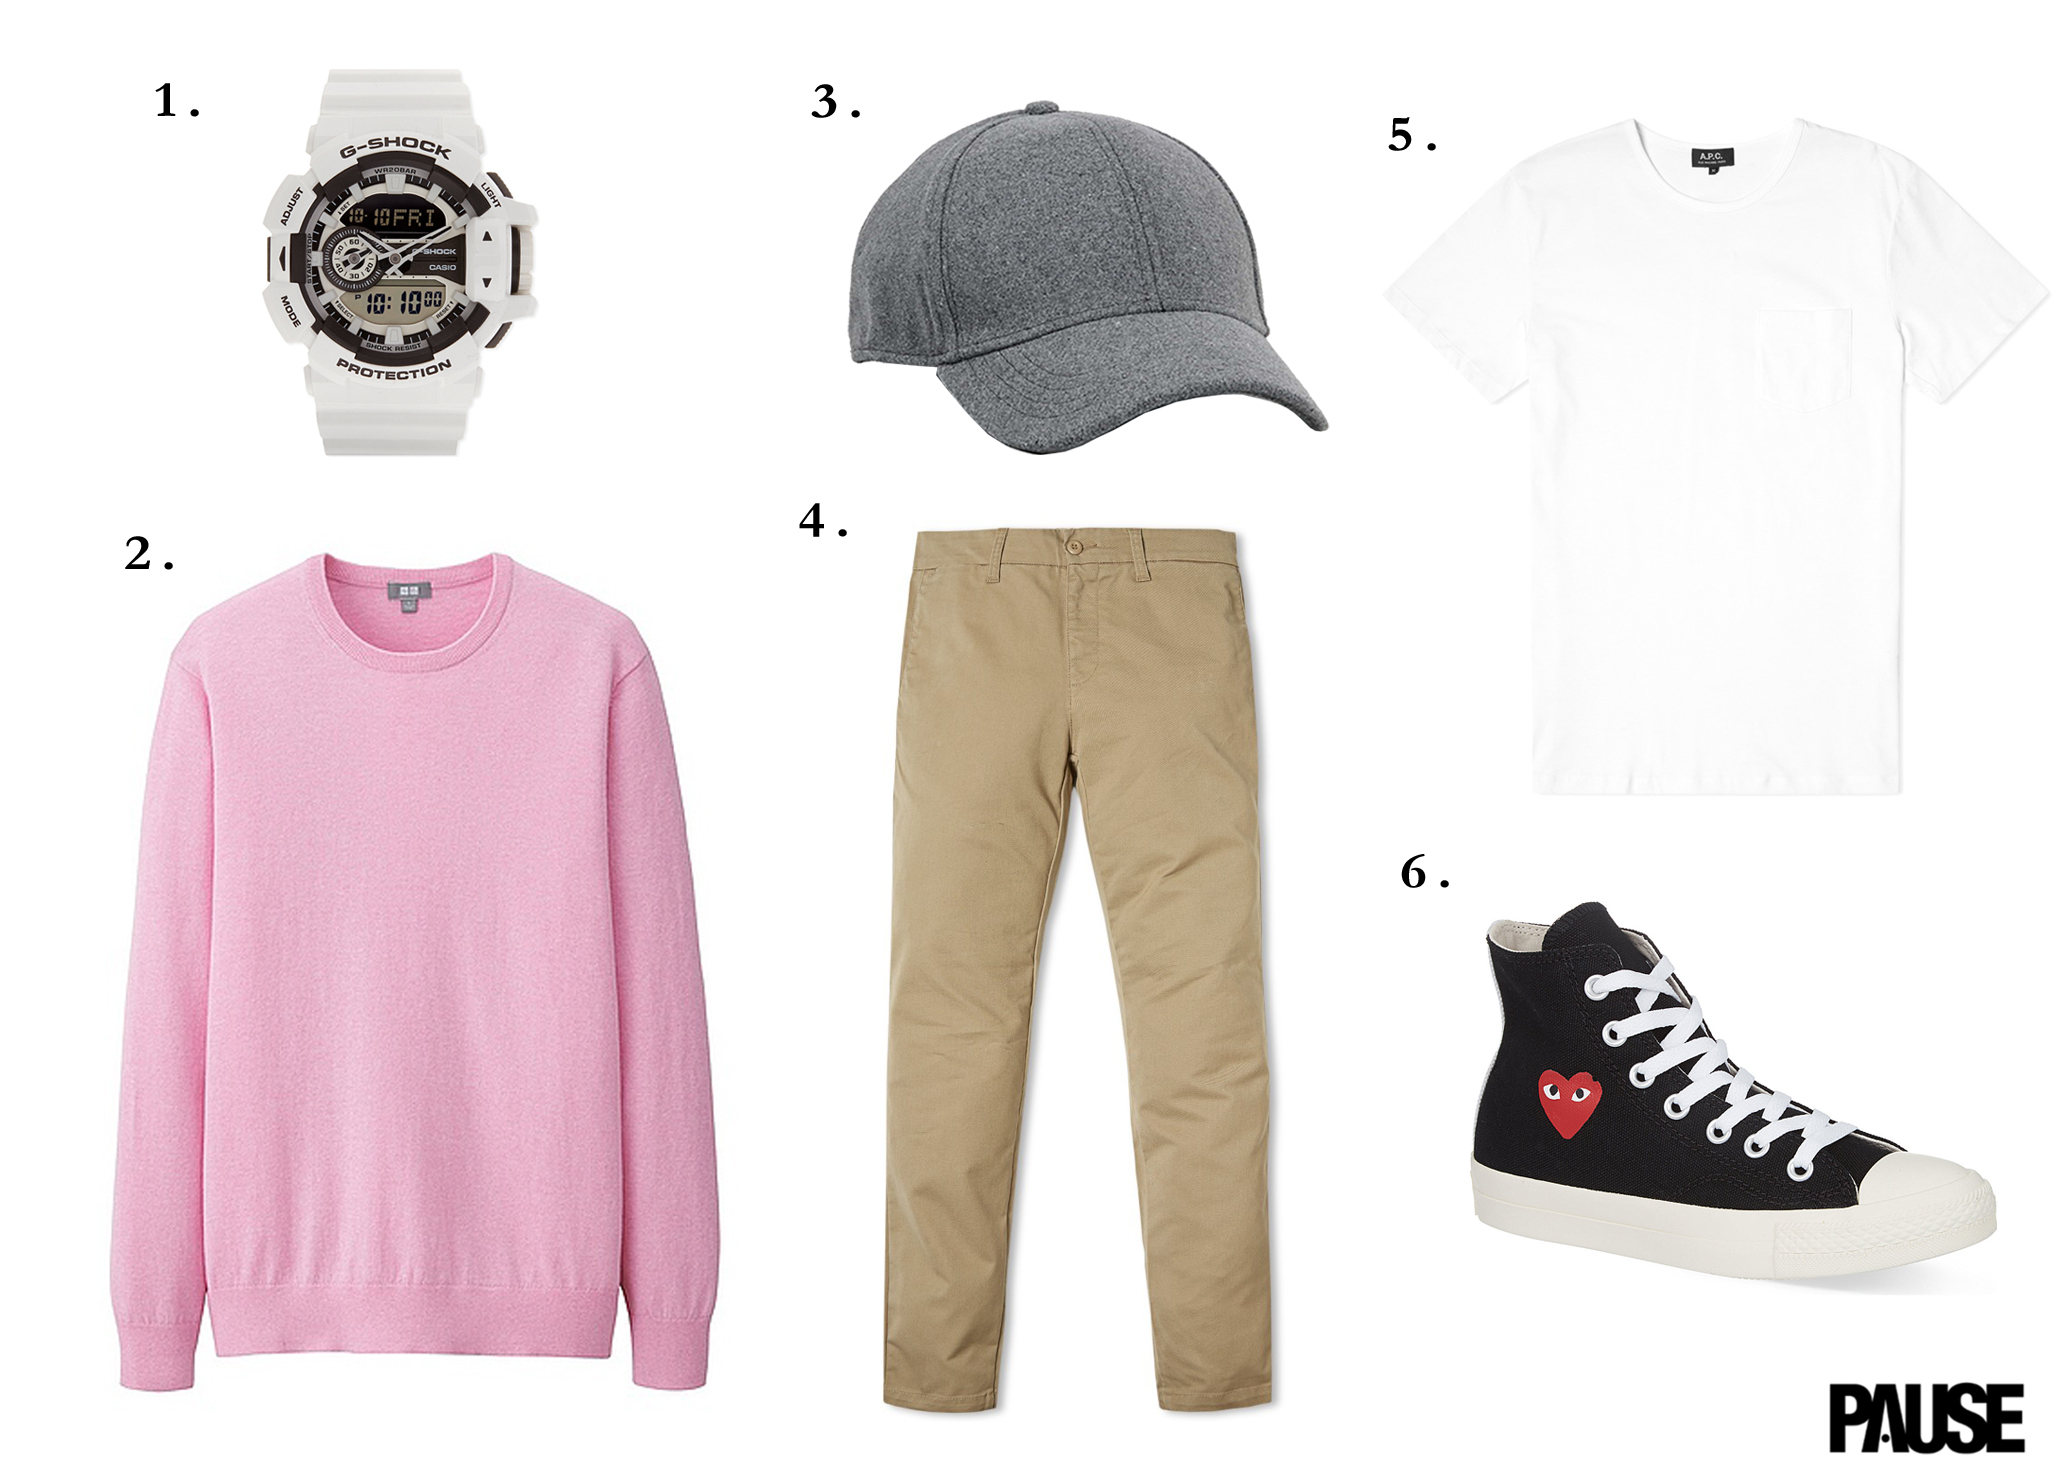 PAUSE Outfit Of The Week: Classic Youth